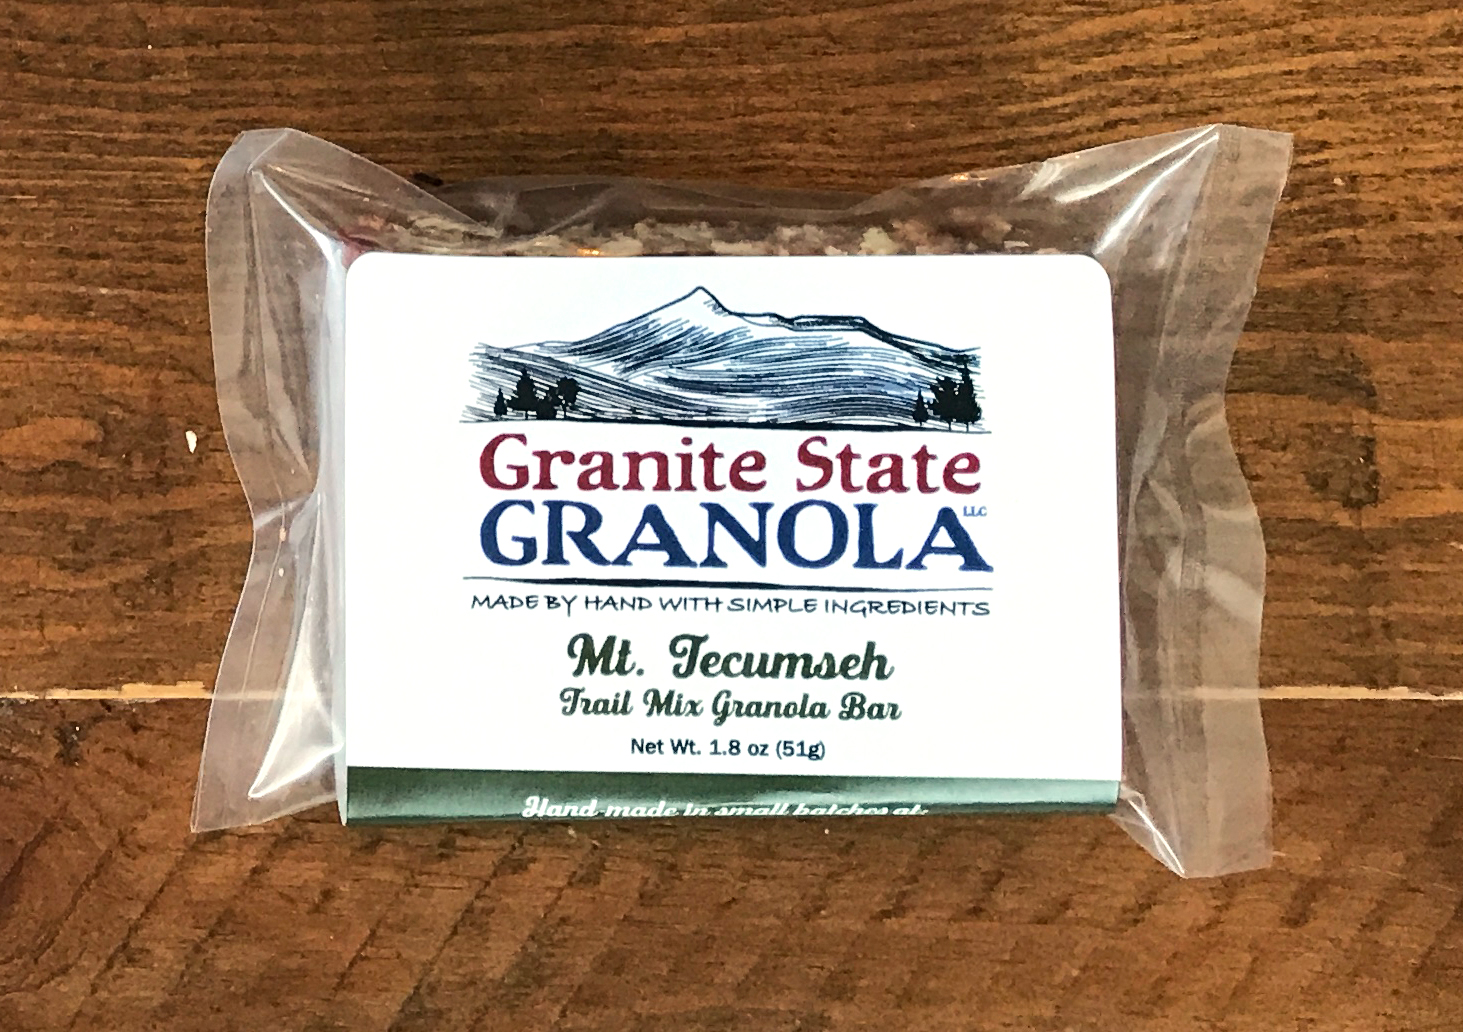 Mt. Tecumseh, Trail Mix Granola Bar